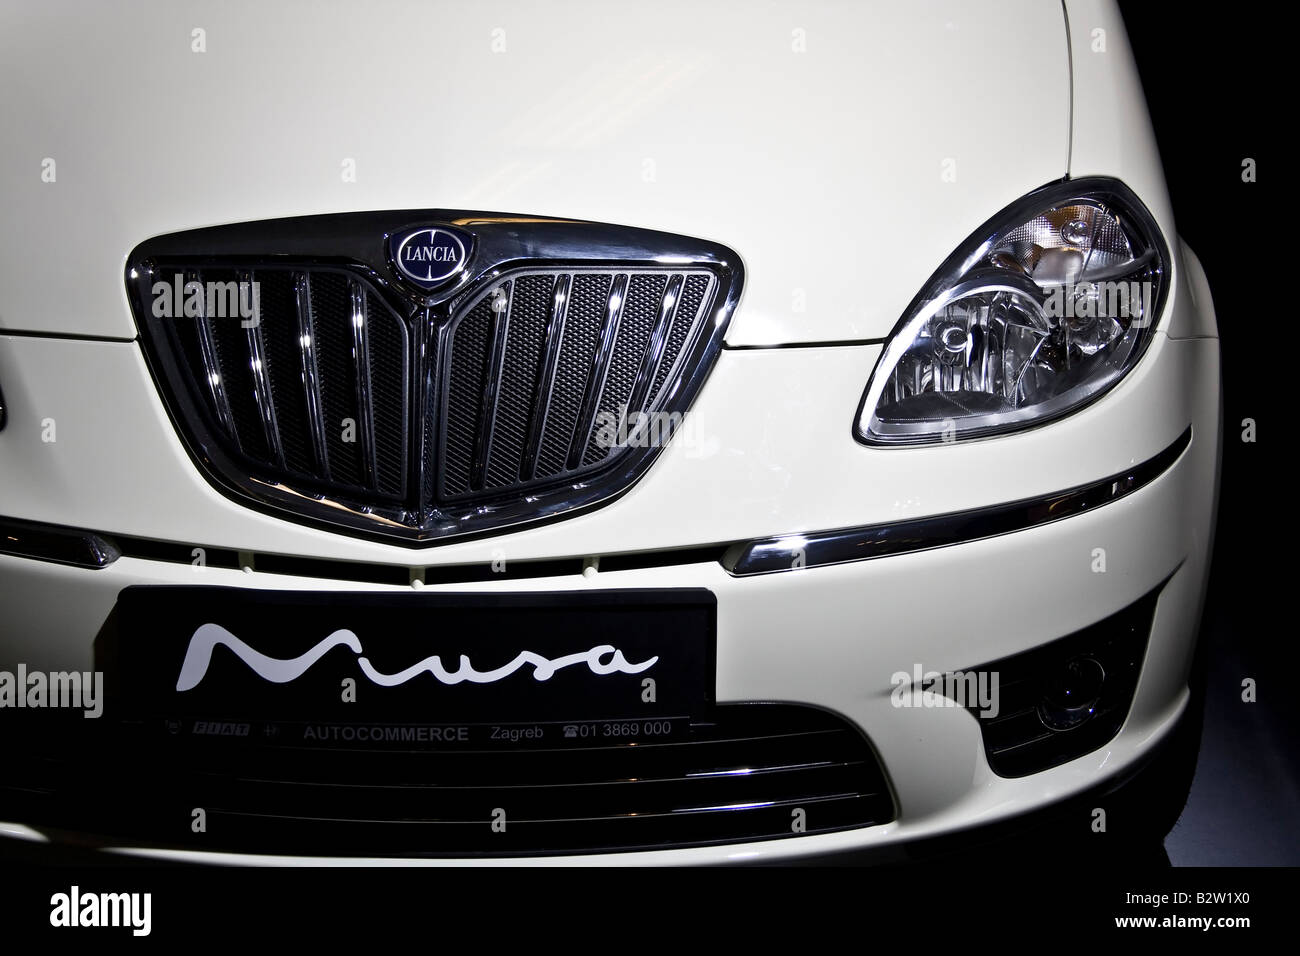 http://c8.alamy.com/comp/B2W1X0/lancia-musa-at-zagreb-auto-show-in-croatia-from-2832008-06-04-2008-B2W1X0.jpg